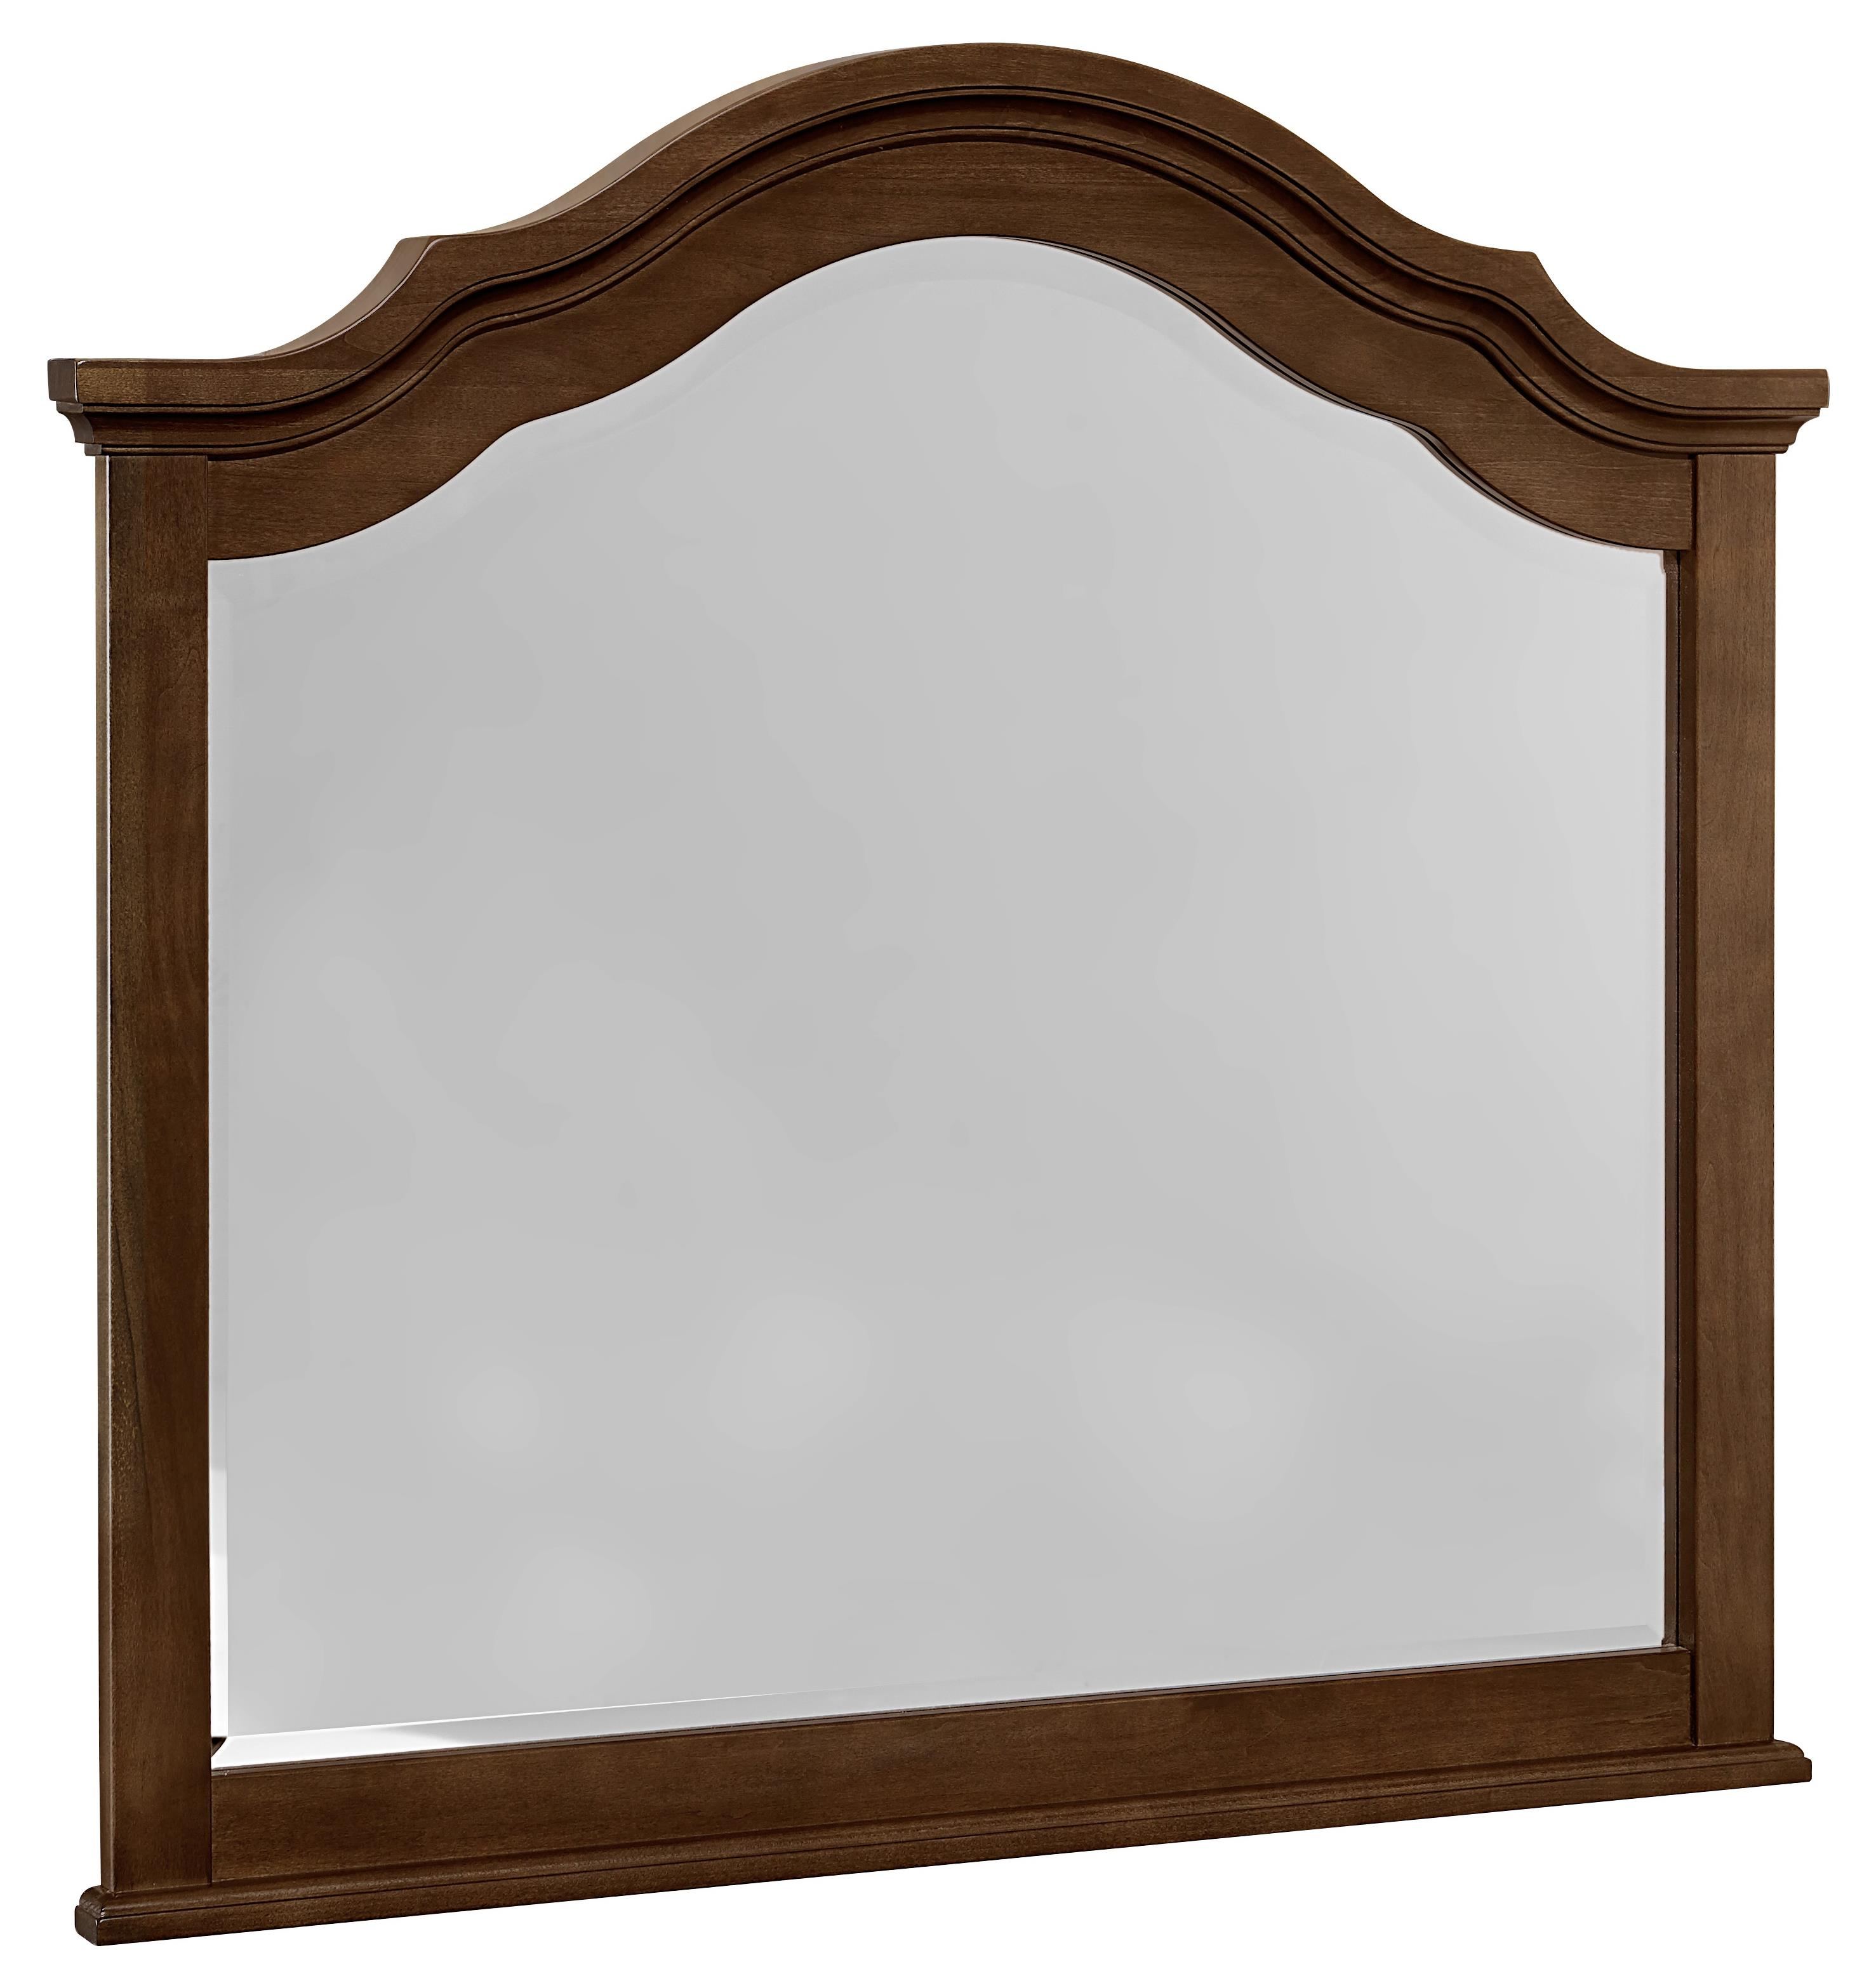 Vaughan Bassett French Market Arched Mirror - Item Number: 382-447